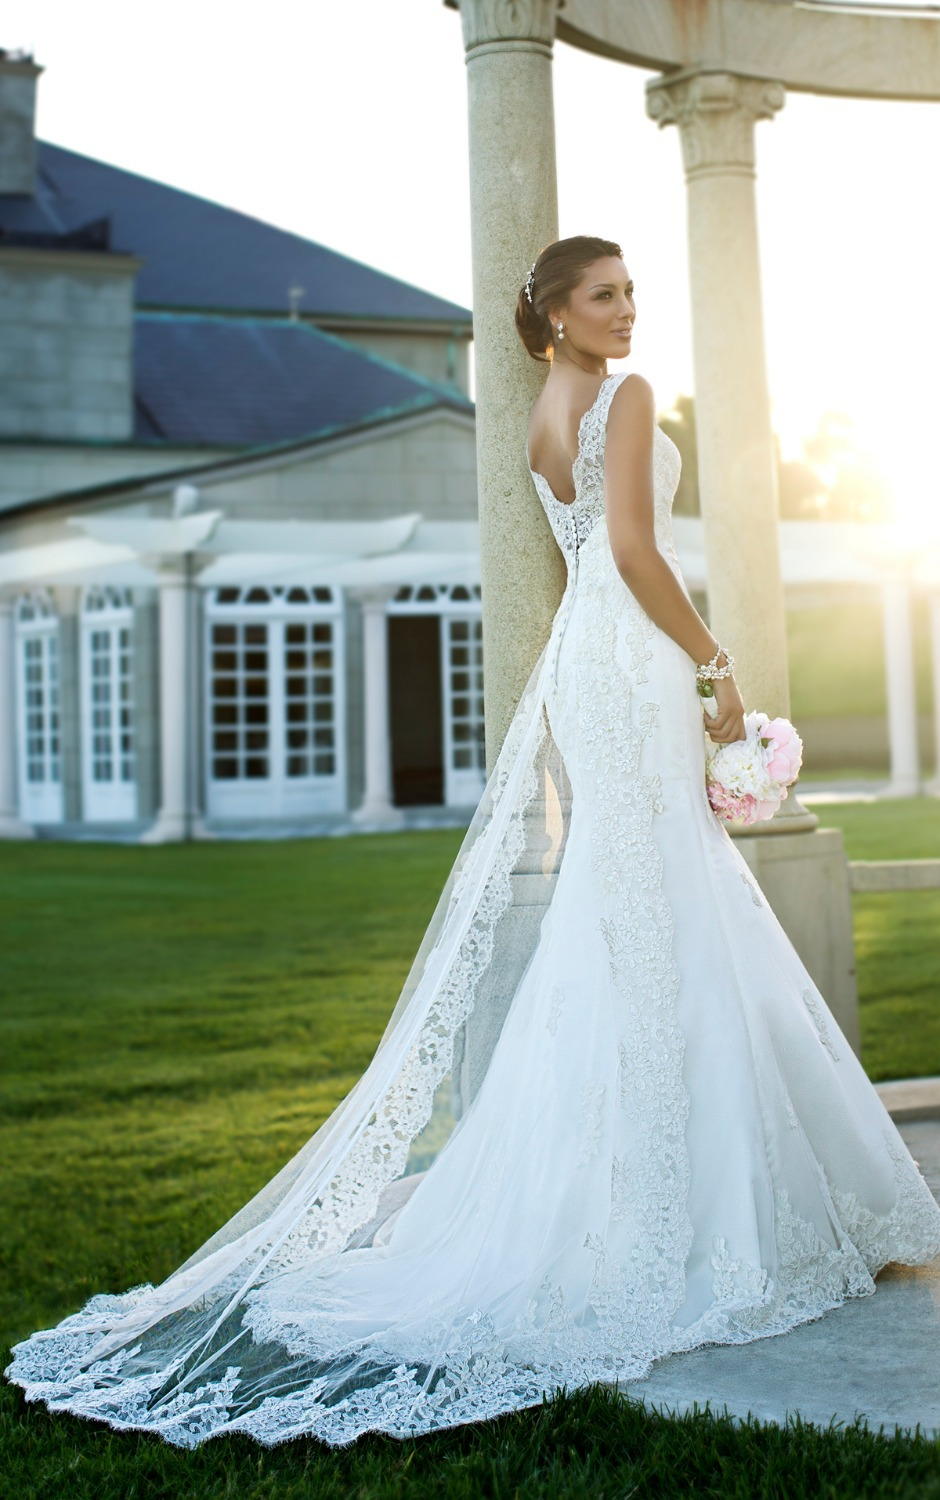 Romantic Satin Lace Wedding Dresses Bridal Gowns Dress Lace Overlay ...